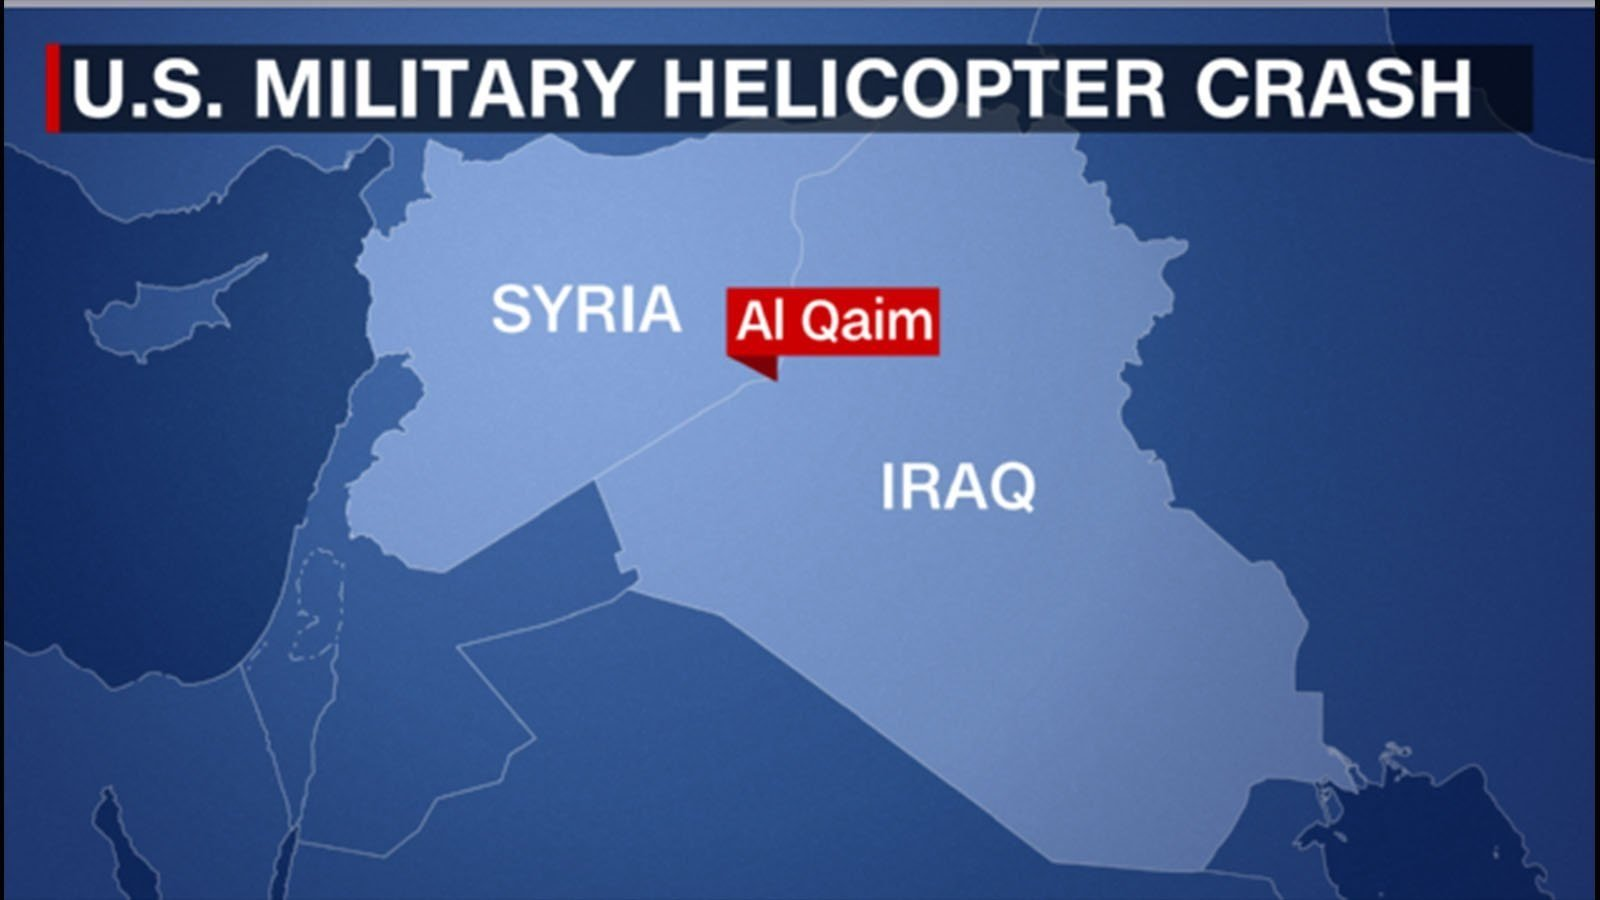 A US military HH-60 Pave Hawk helicopter, a Black Hawk variant, has crashed in western Iraq (CNN image)